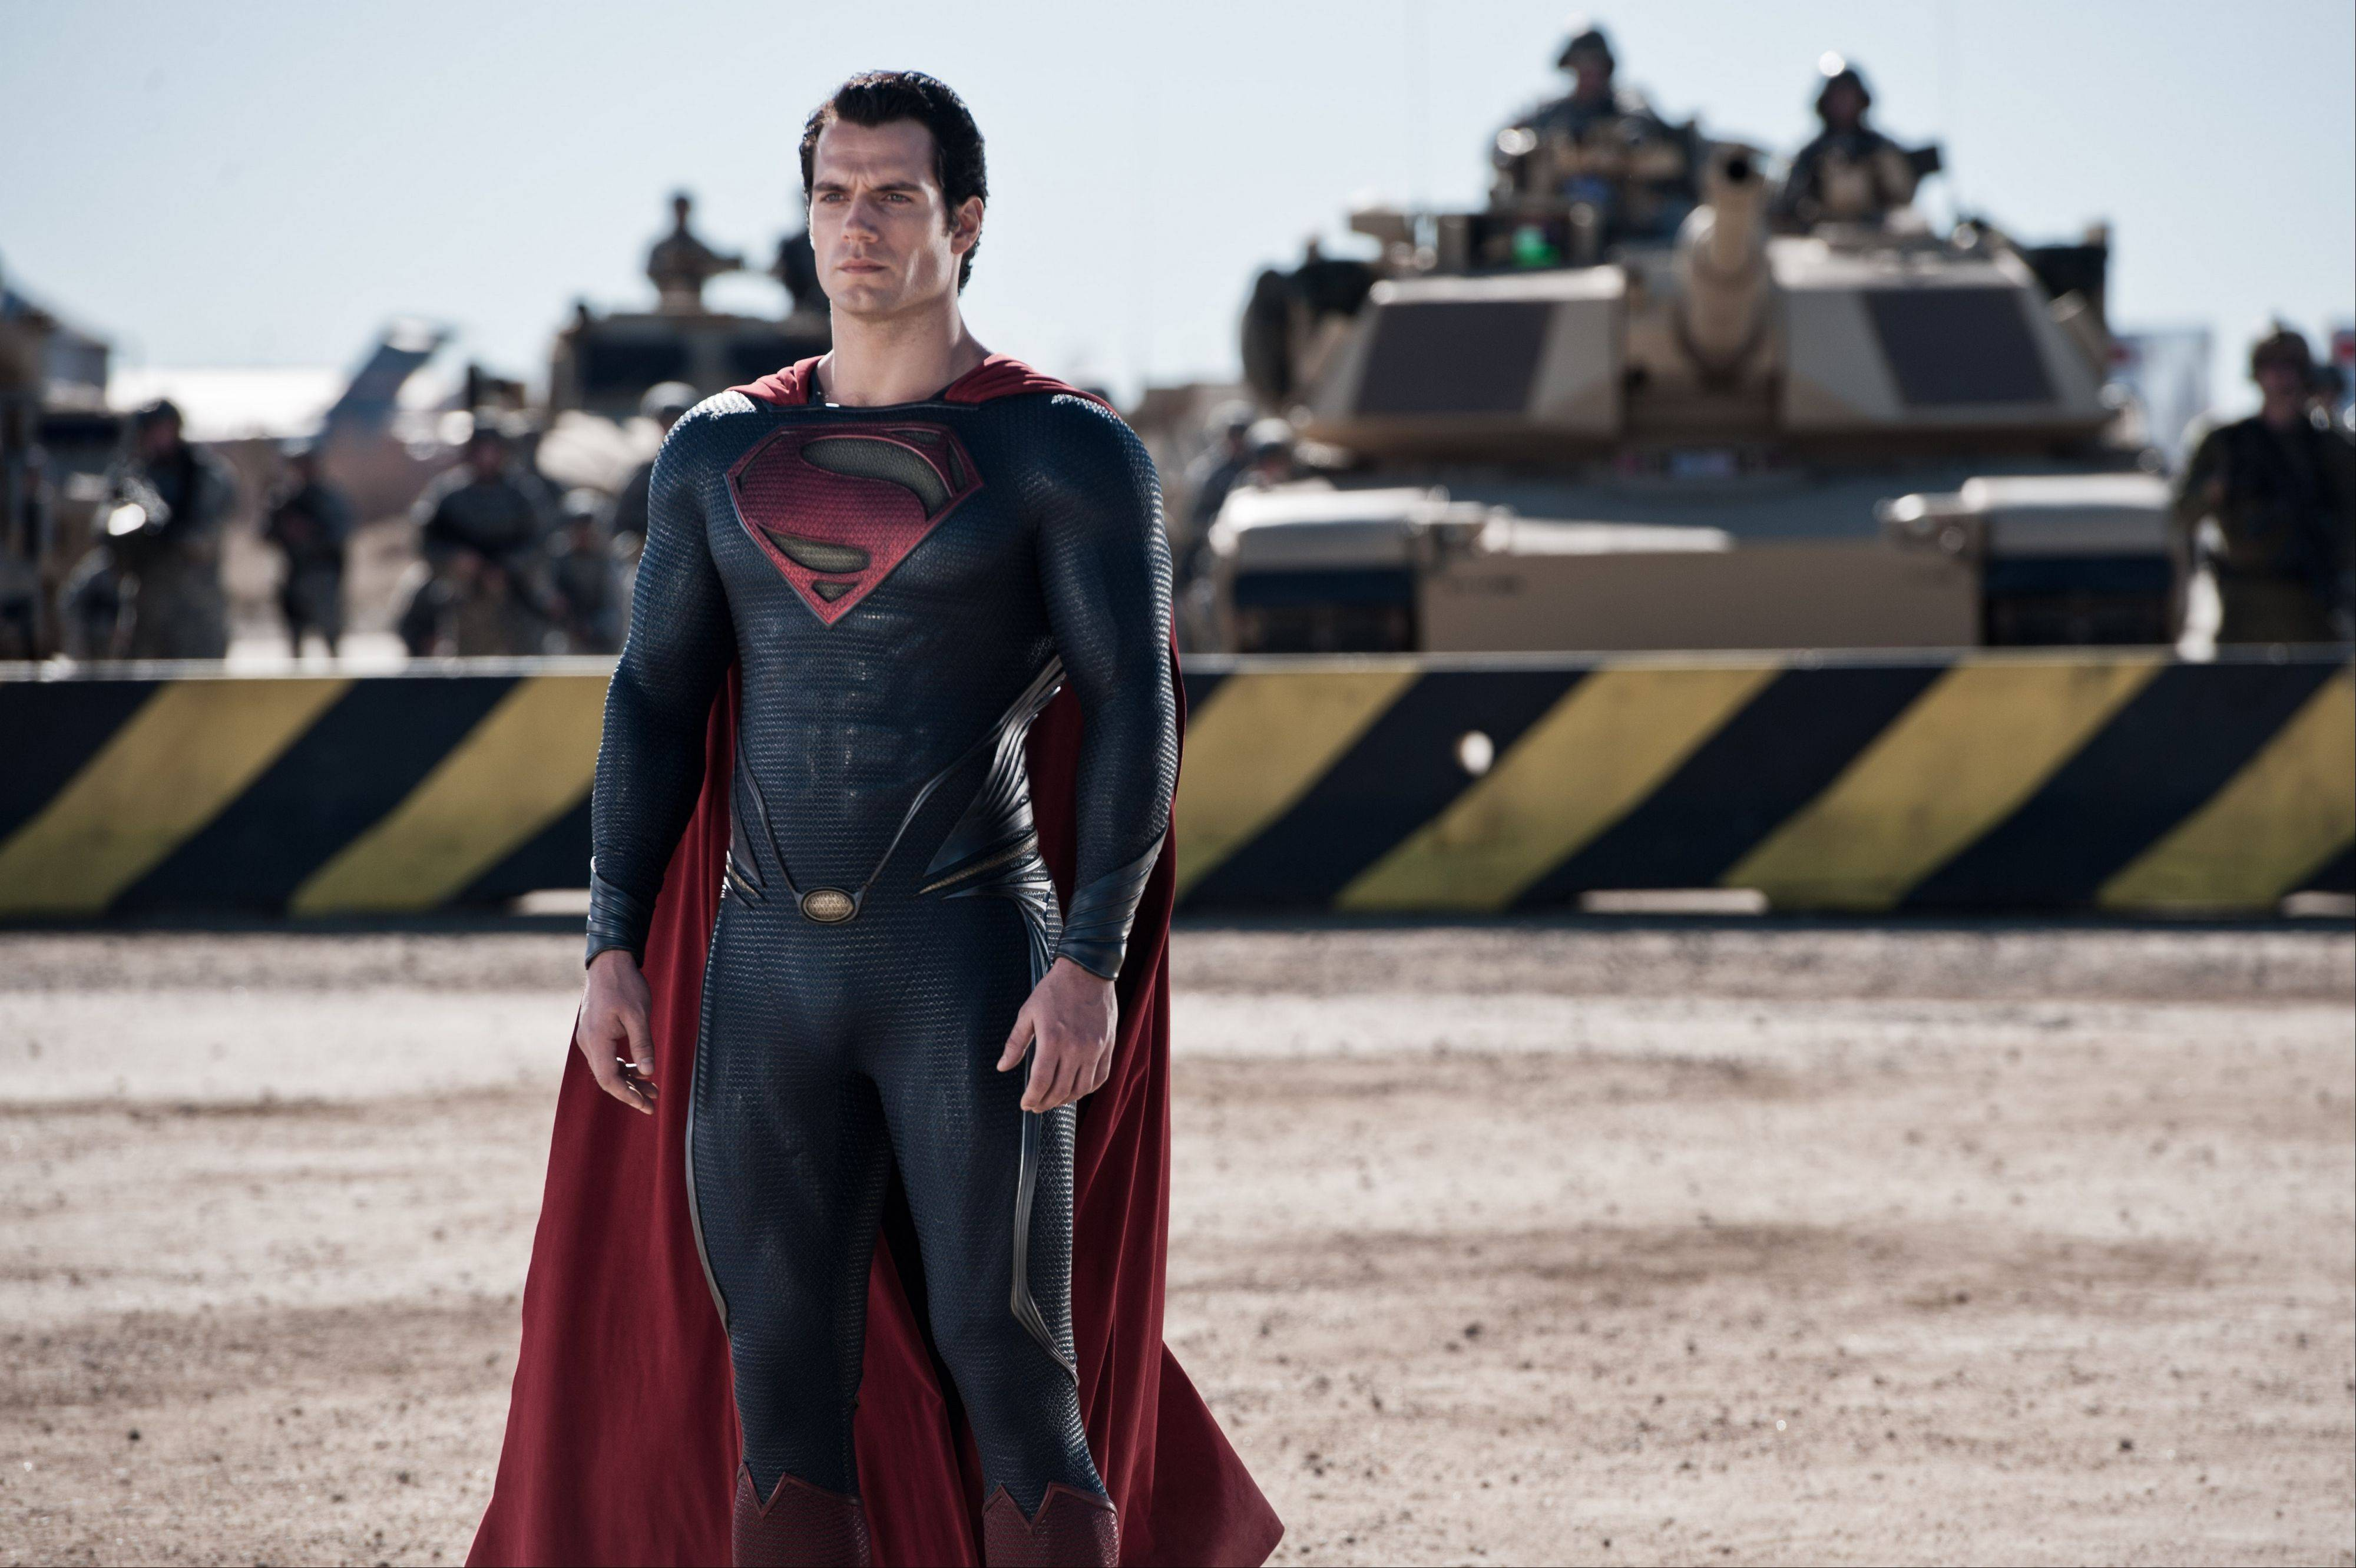 �Man of Steel� director Zack Snyder announced at San Diego�s Comic-Con that he will be making another Superman film that will also feature Batman.